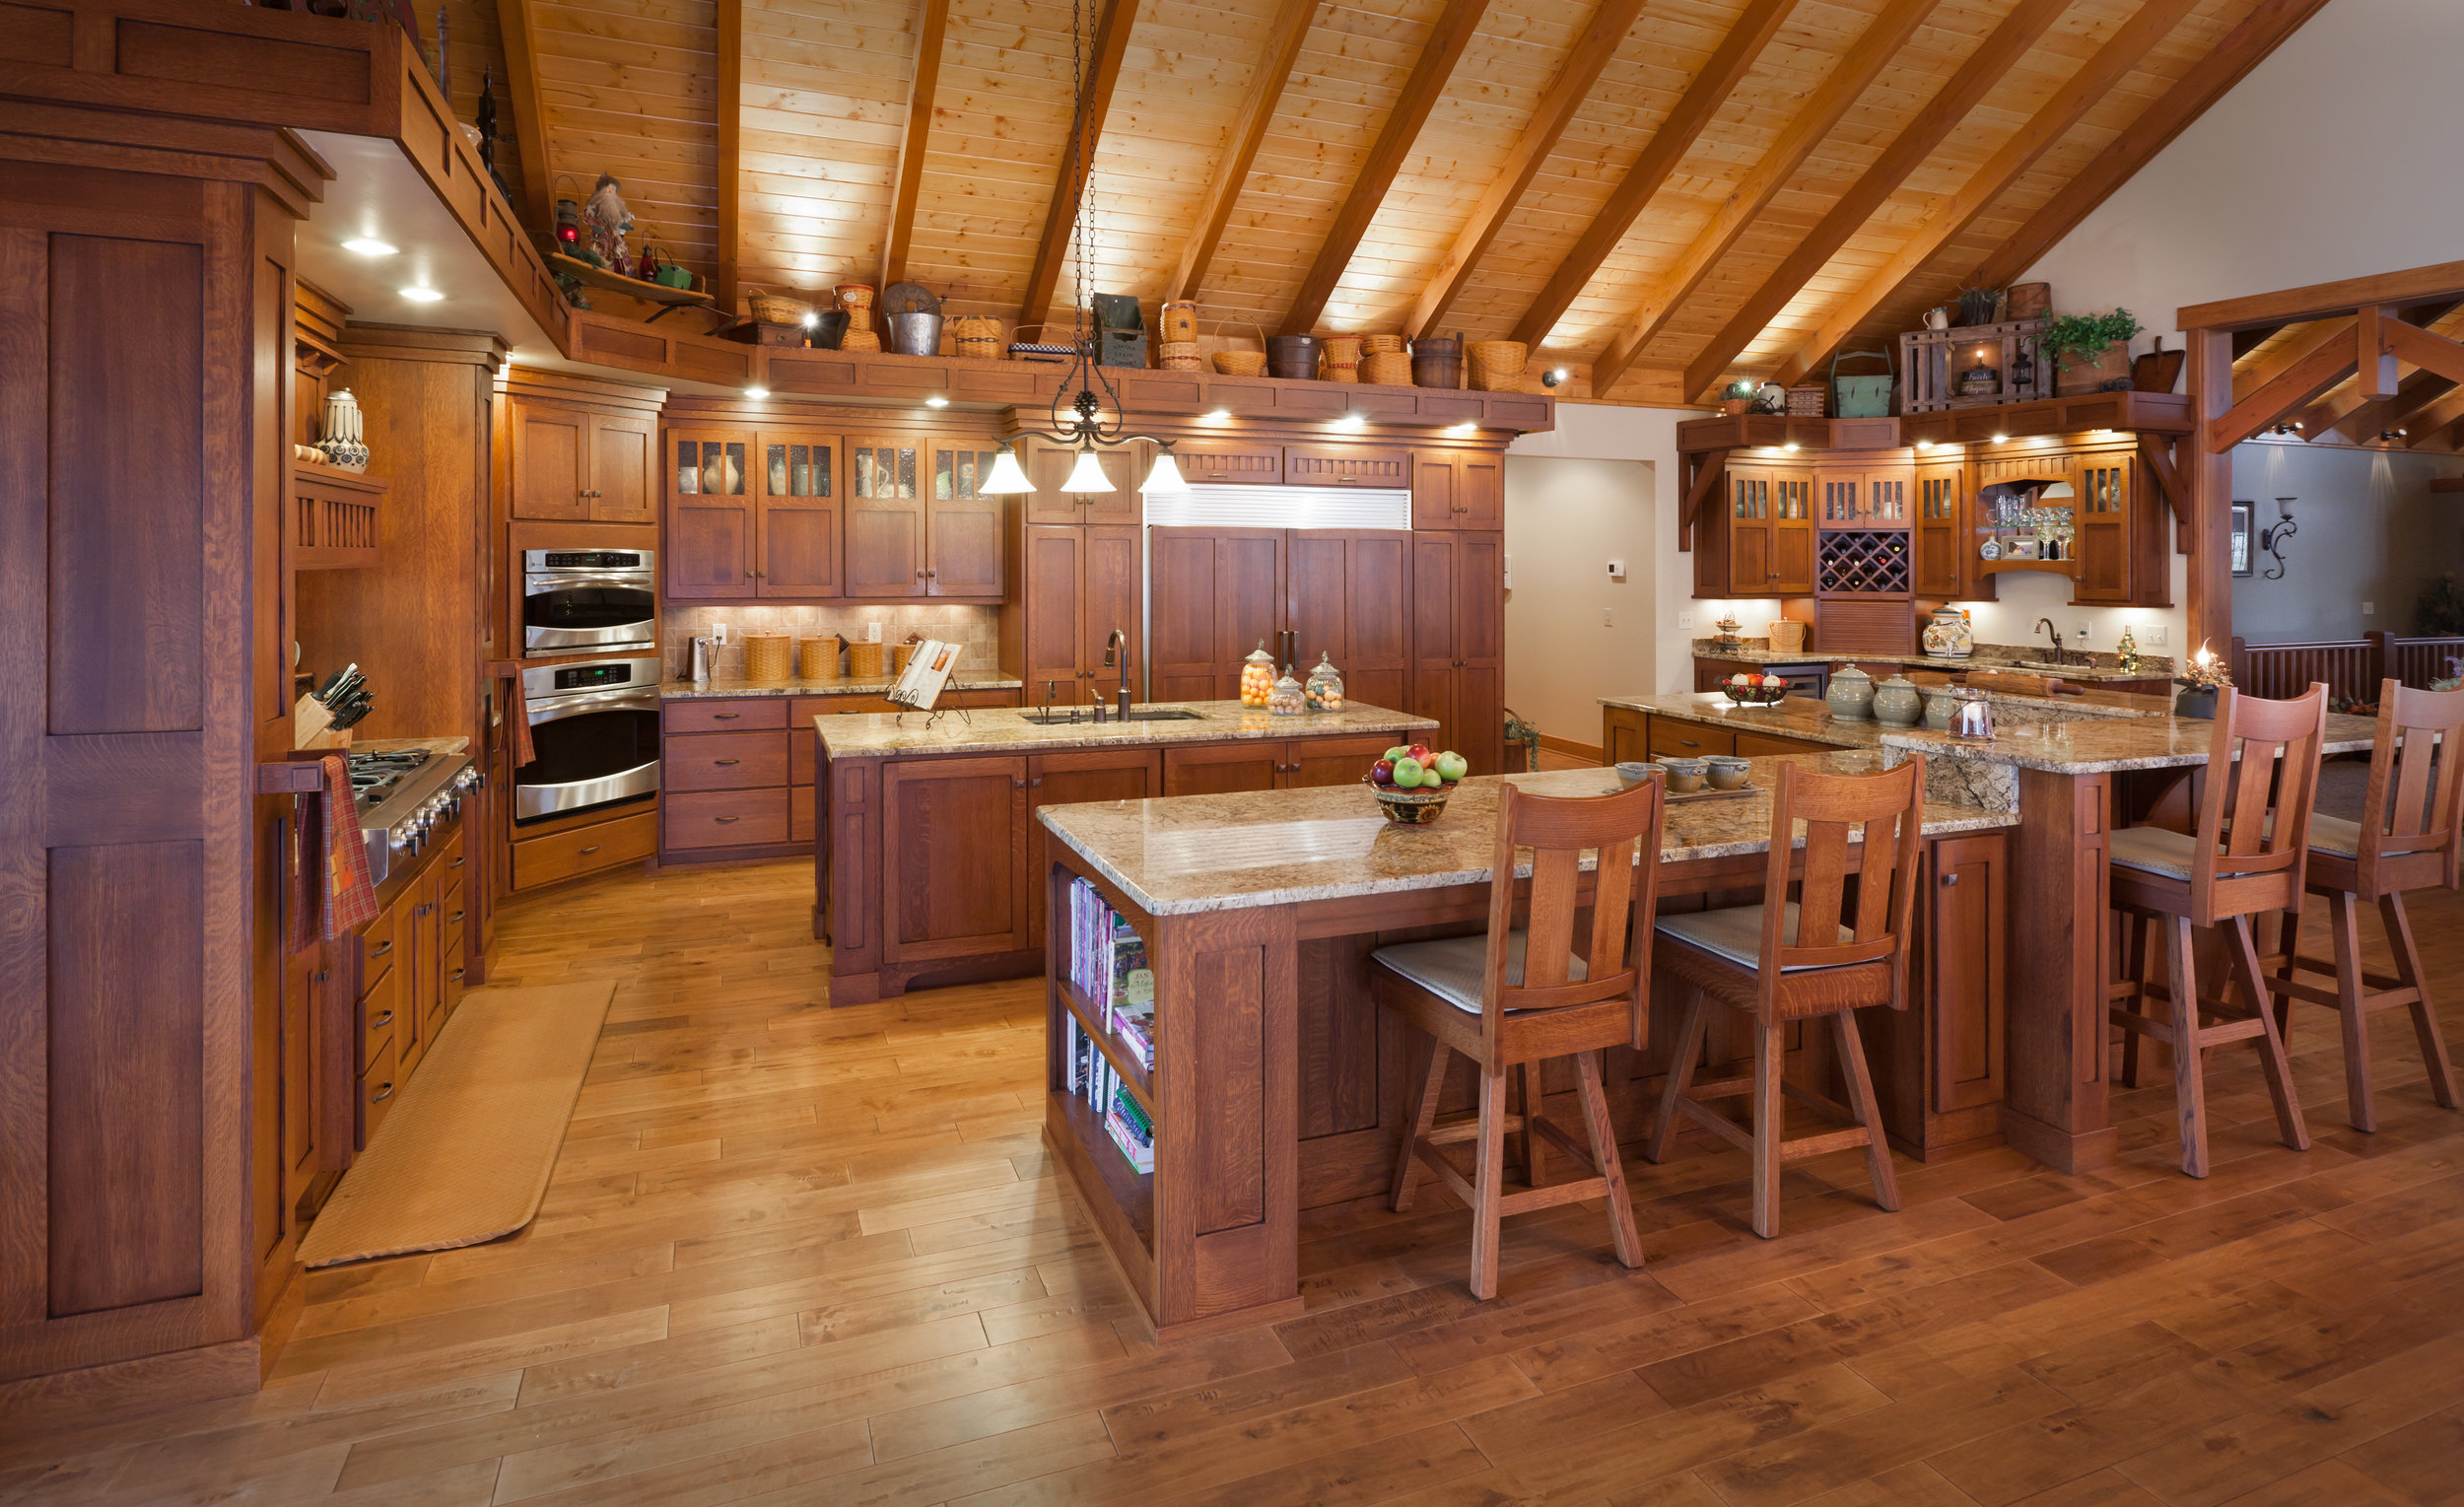 quality kitchen furniture for sale in Northeast Ohio